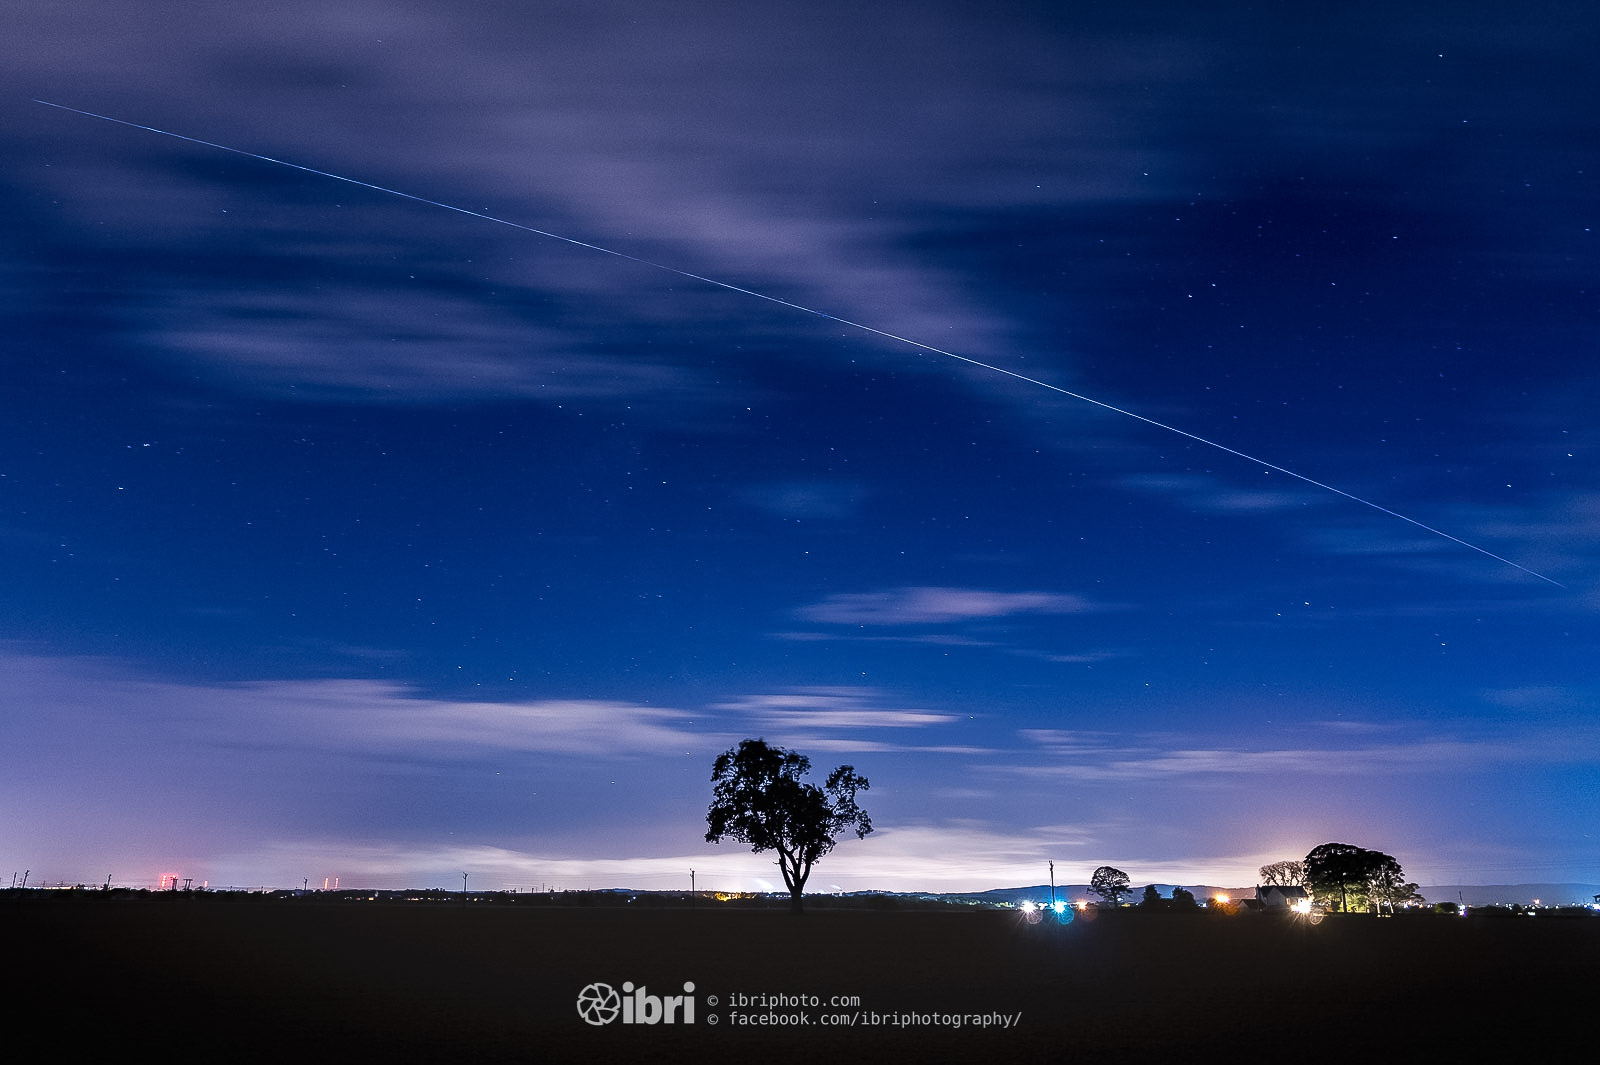 Another fly-past from the International Space Station over the Wee County.